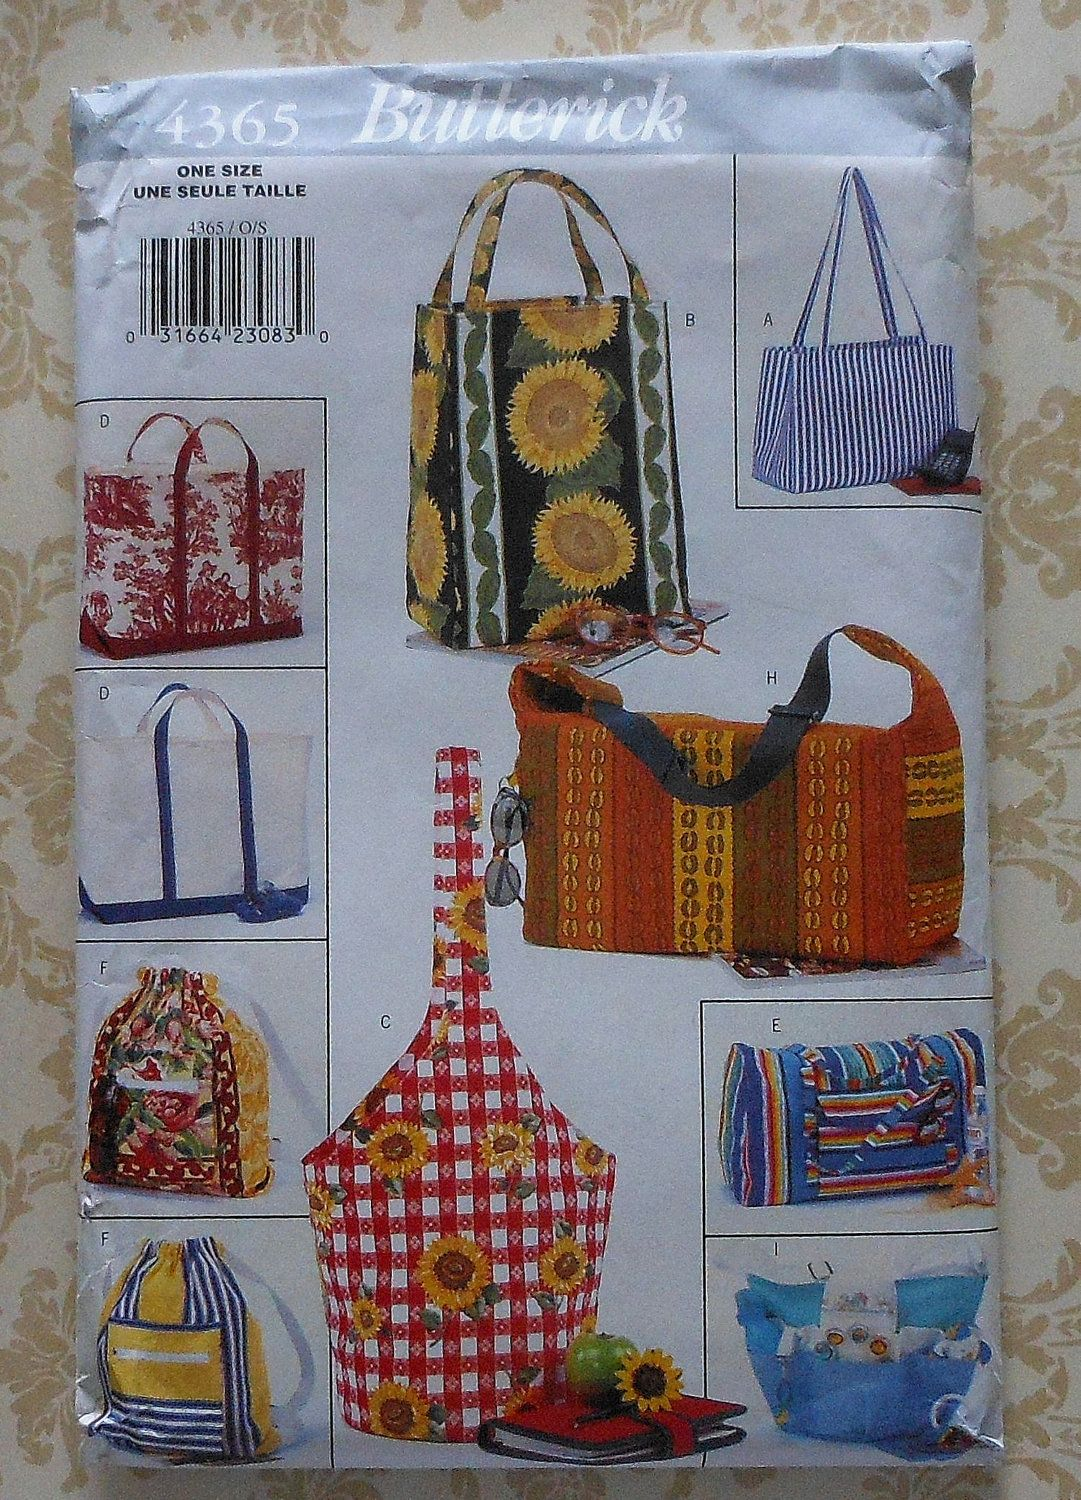 Tote bags sewing pattern sewing patterns pinterest bag tote bags sewing pattern jeuxipadfo Gallery